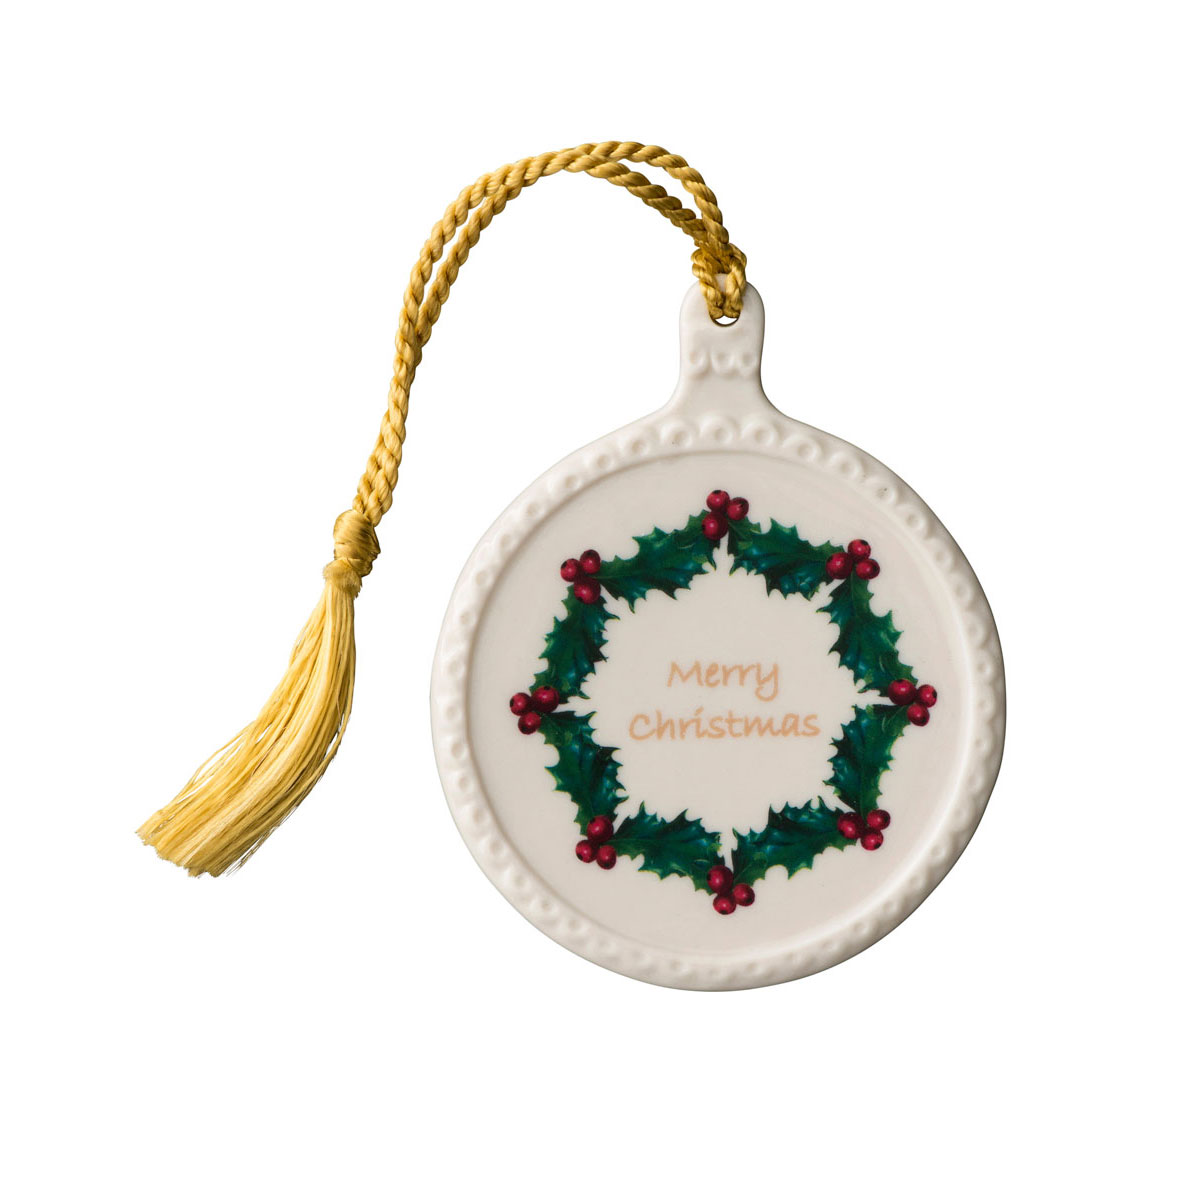 Belleek Merry Christmas Ornament